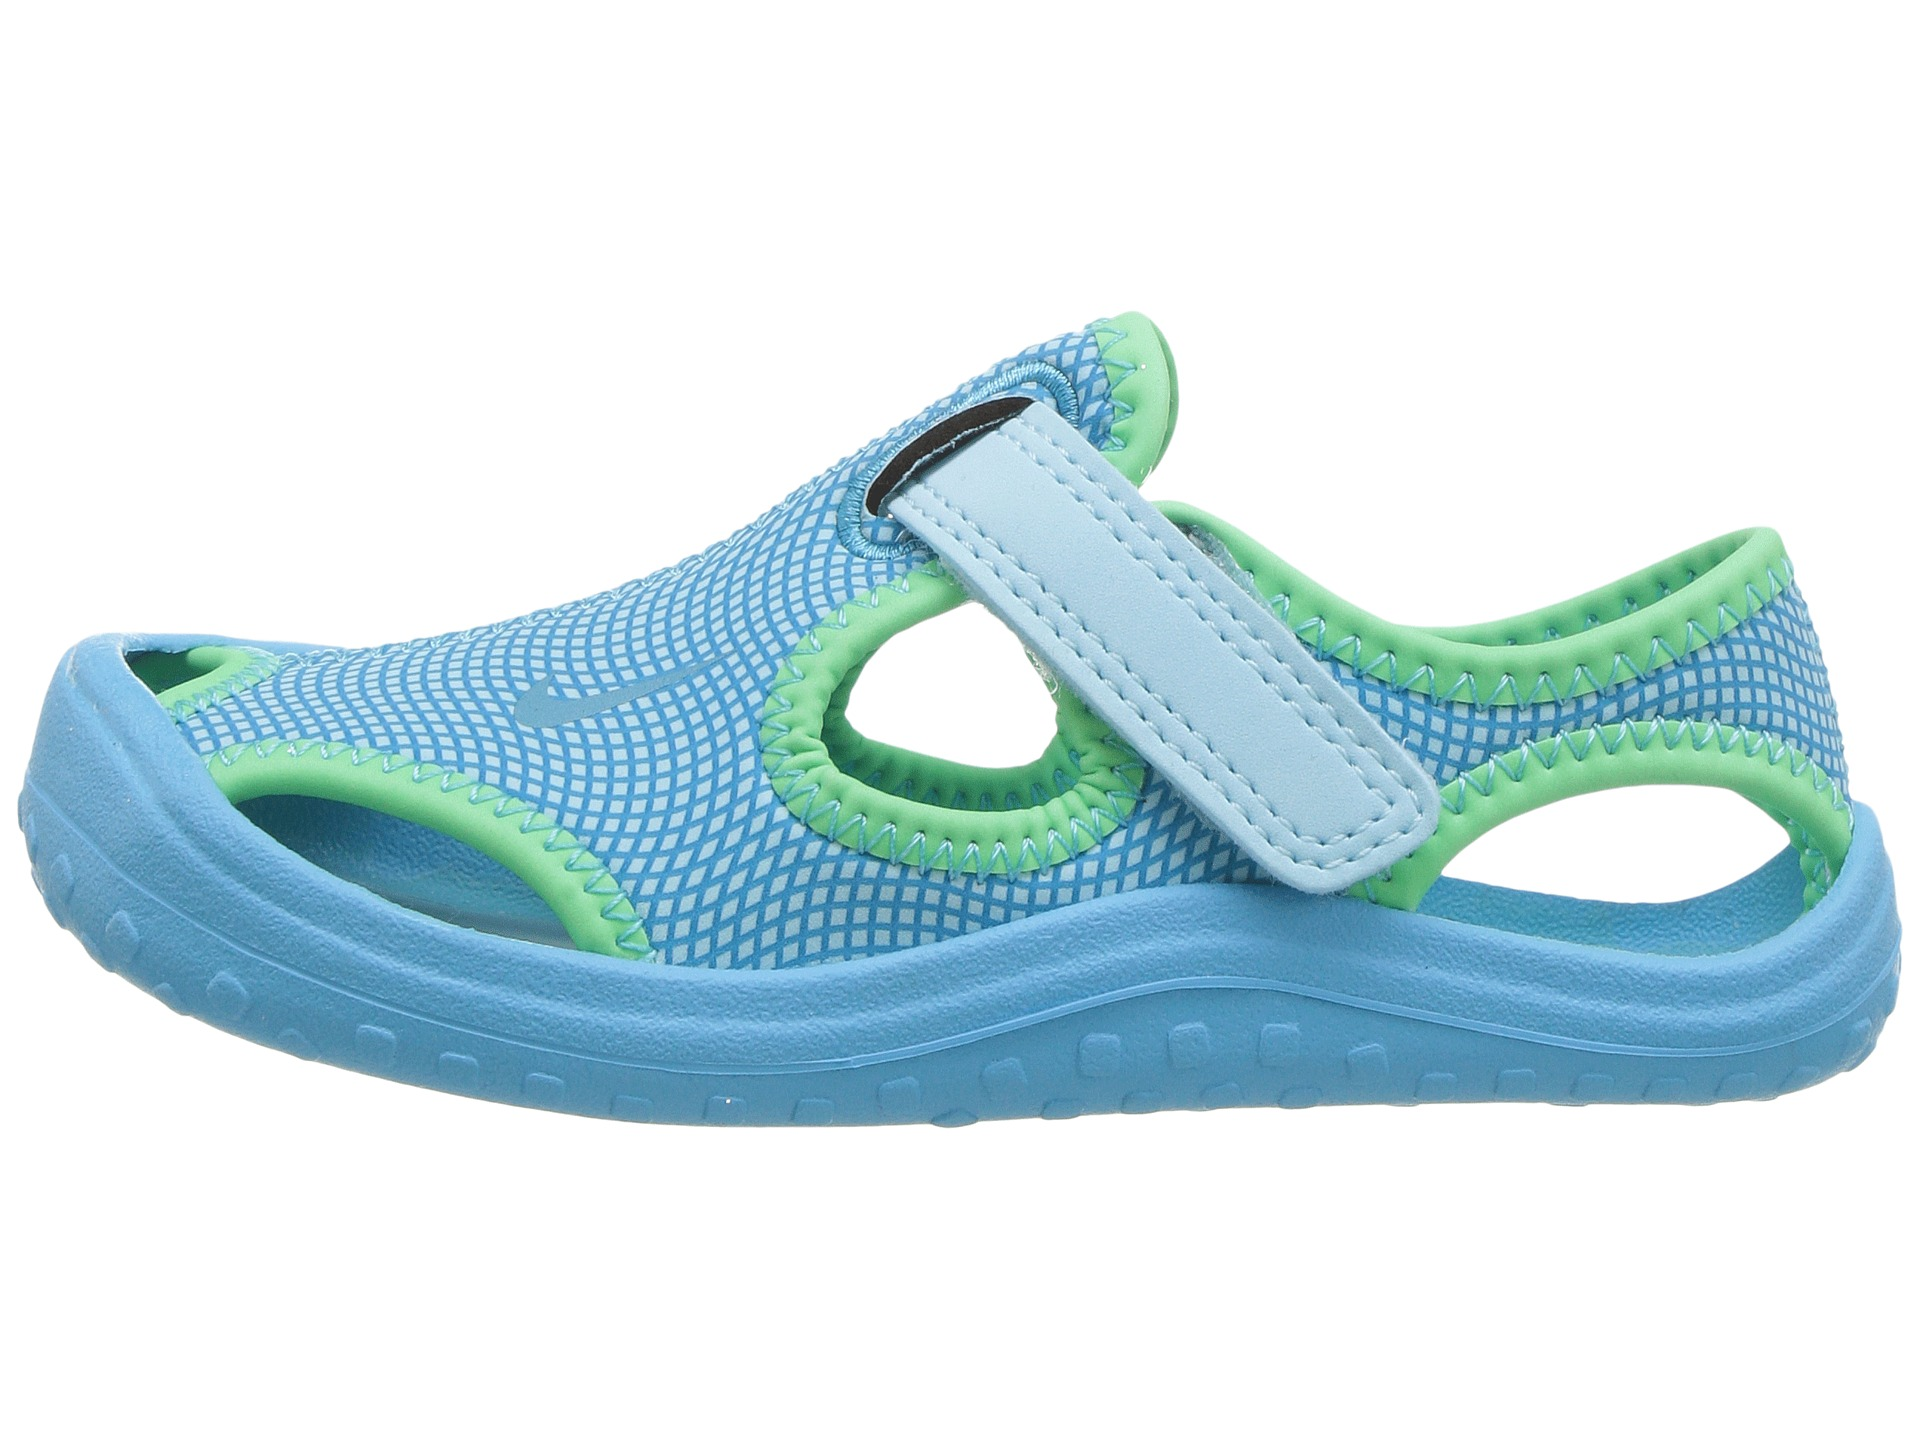 Toddler Nike Sunray Shoes